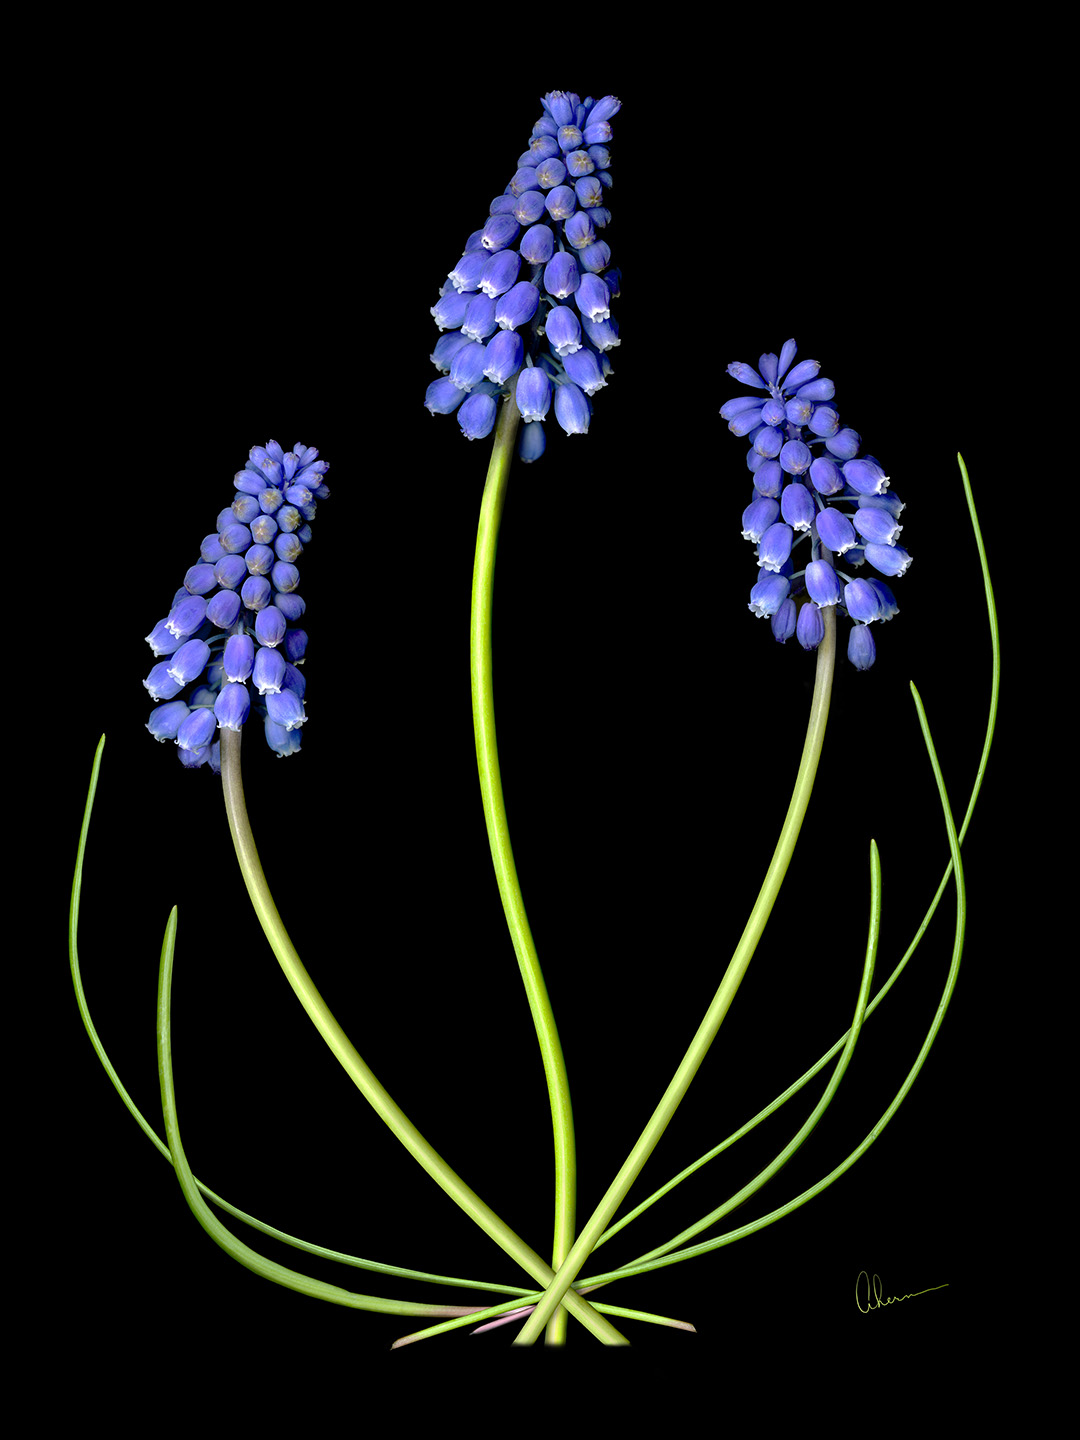 Grape Muscari